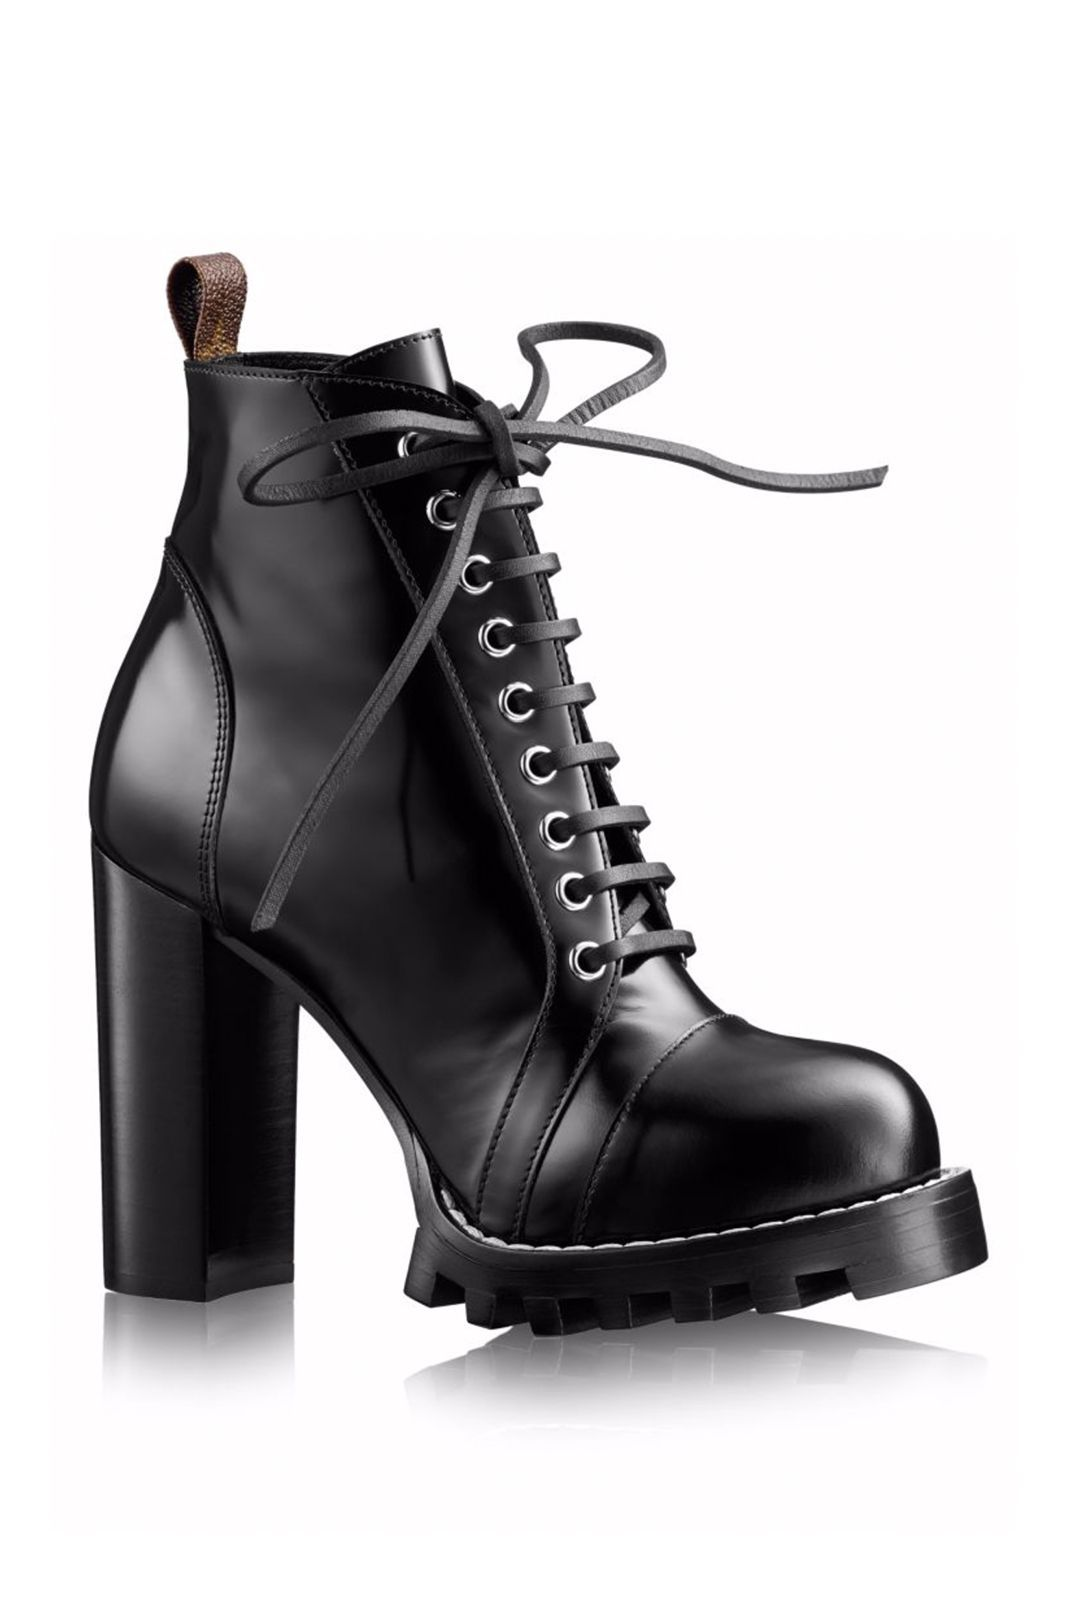 2ae269bfd295 Women s Boots - Best Ankle Boots 2016